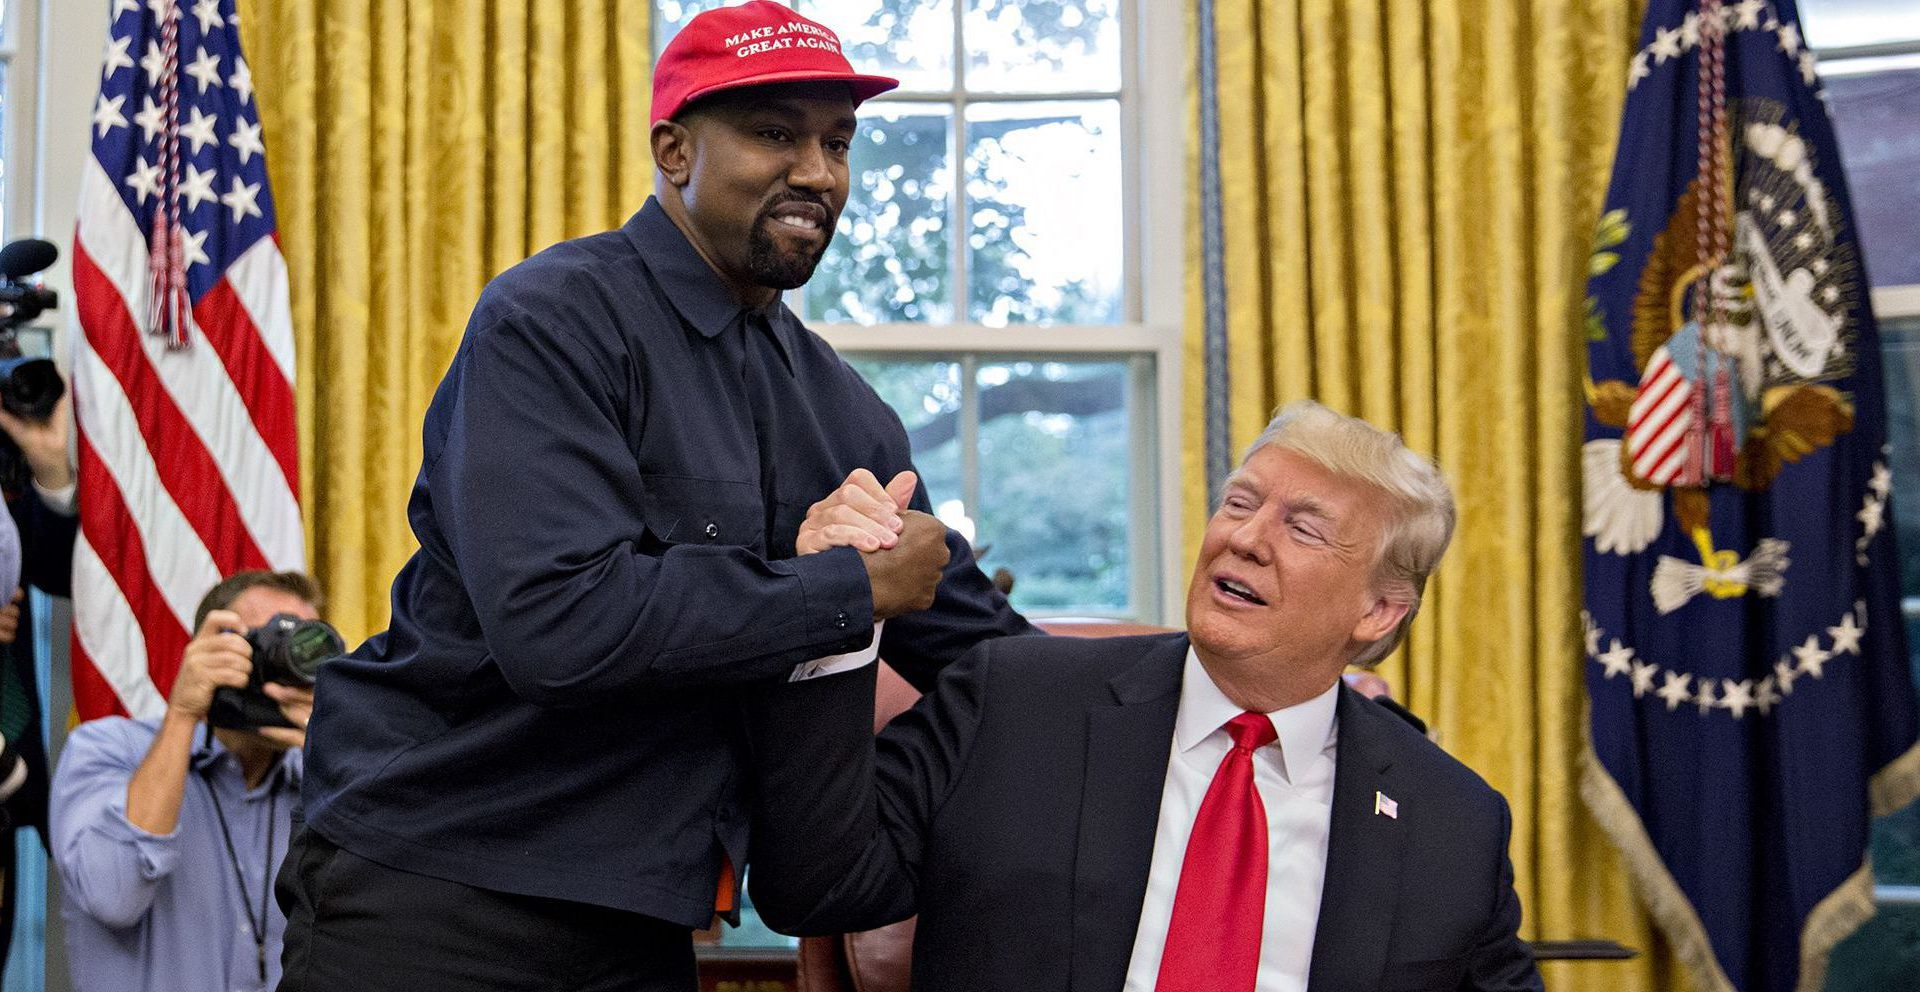 Kanye West y Donald Trump. Fotografía: Getty Images